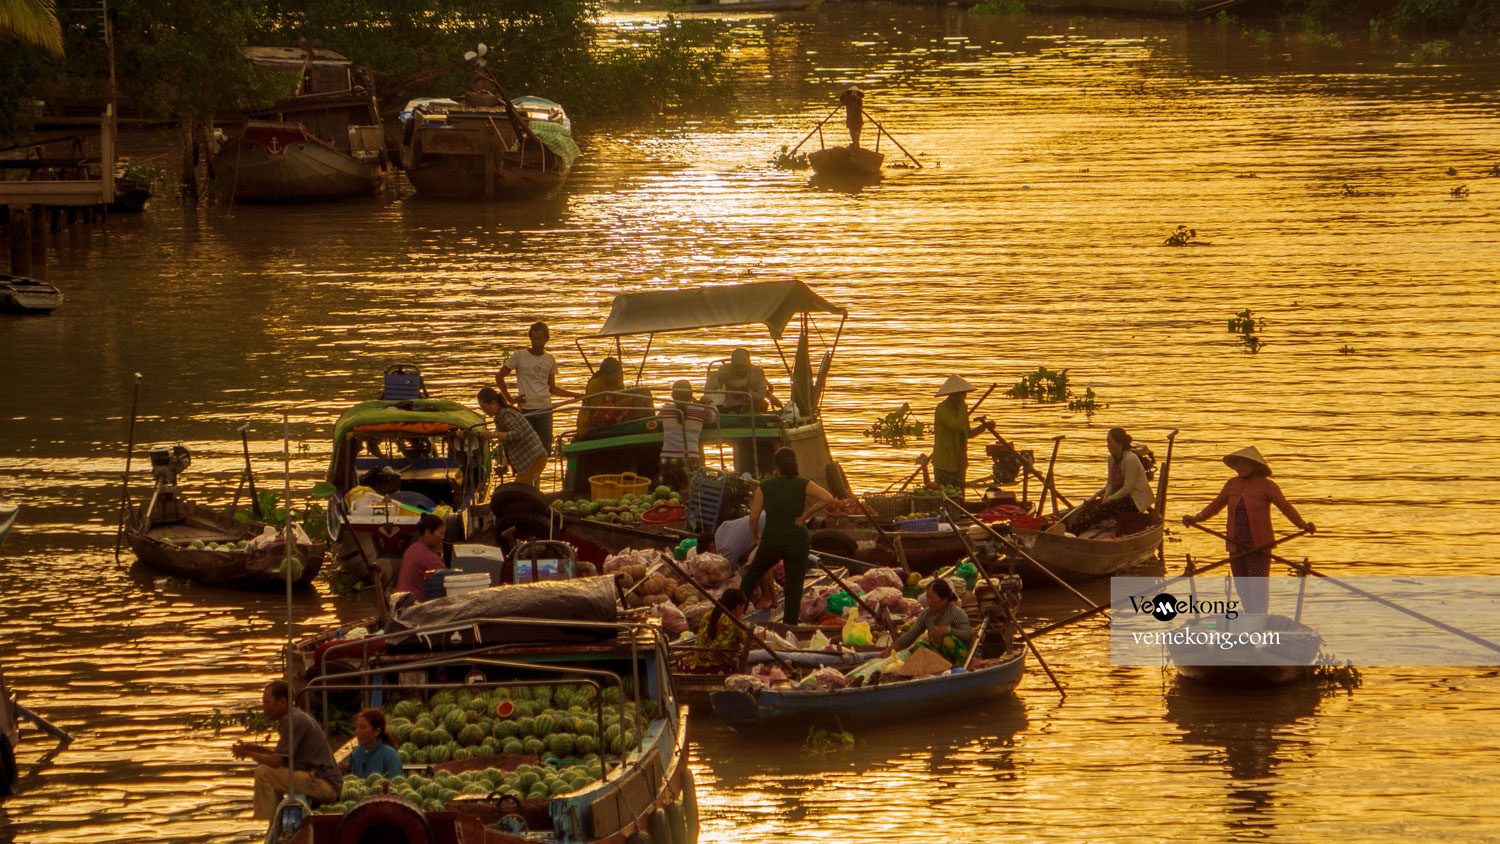 20 Best Things to Do & See in Can Tho, Vietnam